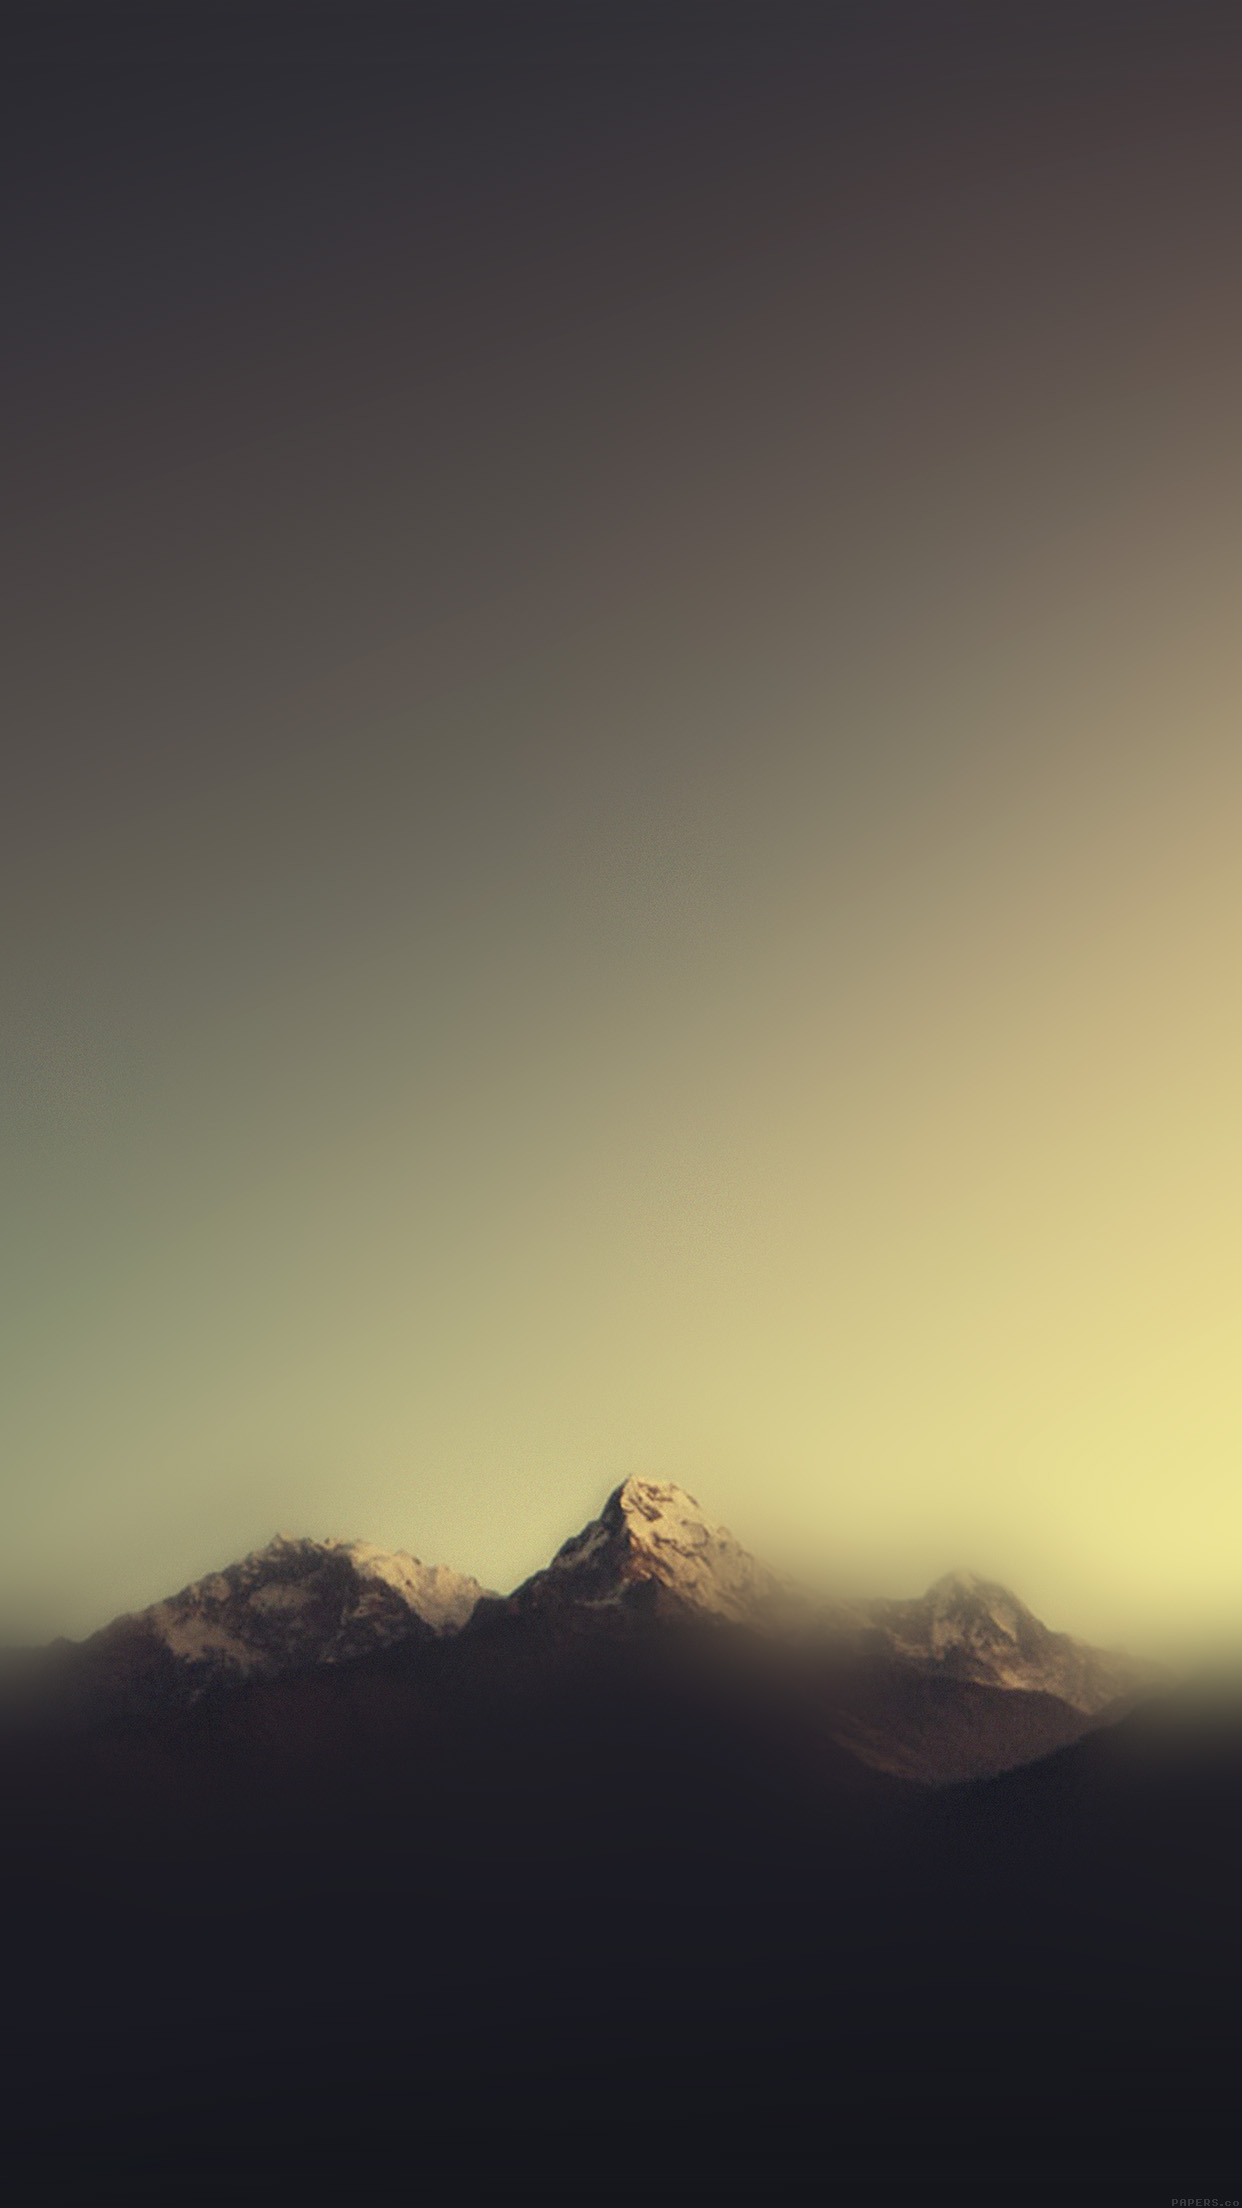 Ml07 mountain blur minimal nature - Best background wallpaper for mobile ...